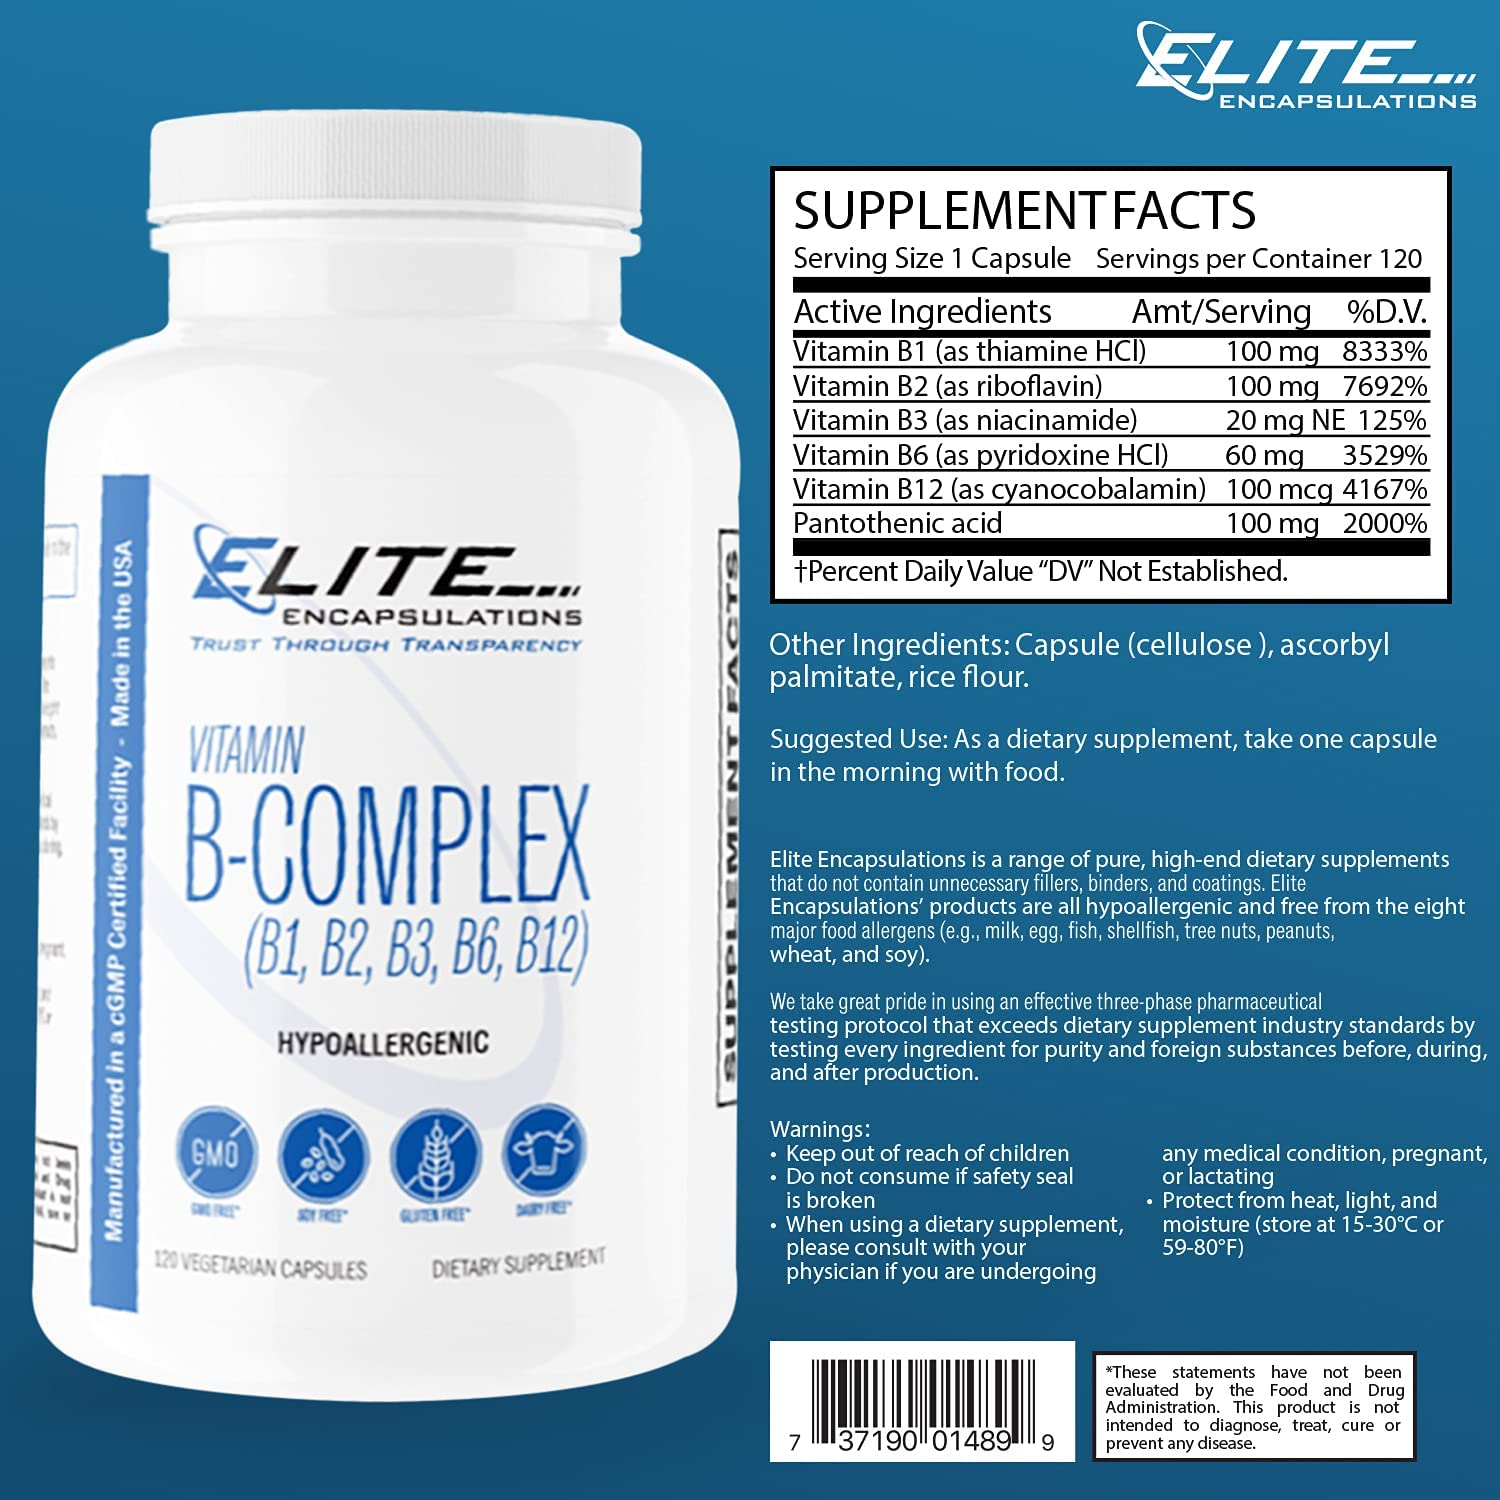 Elite Encapsulations Vitamin B-Complex Dietary Supplement with Vegan Vitamin B1, B2, B3, B6, B12 for Healthy Hair, Skin, Metabolism, Immune System, Stress Relief and More - 120 Vegetarian Capsules